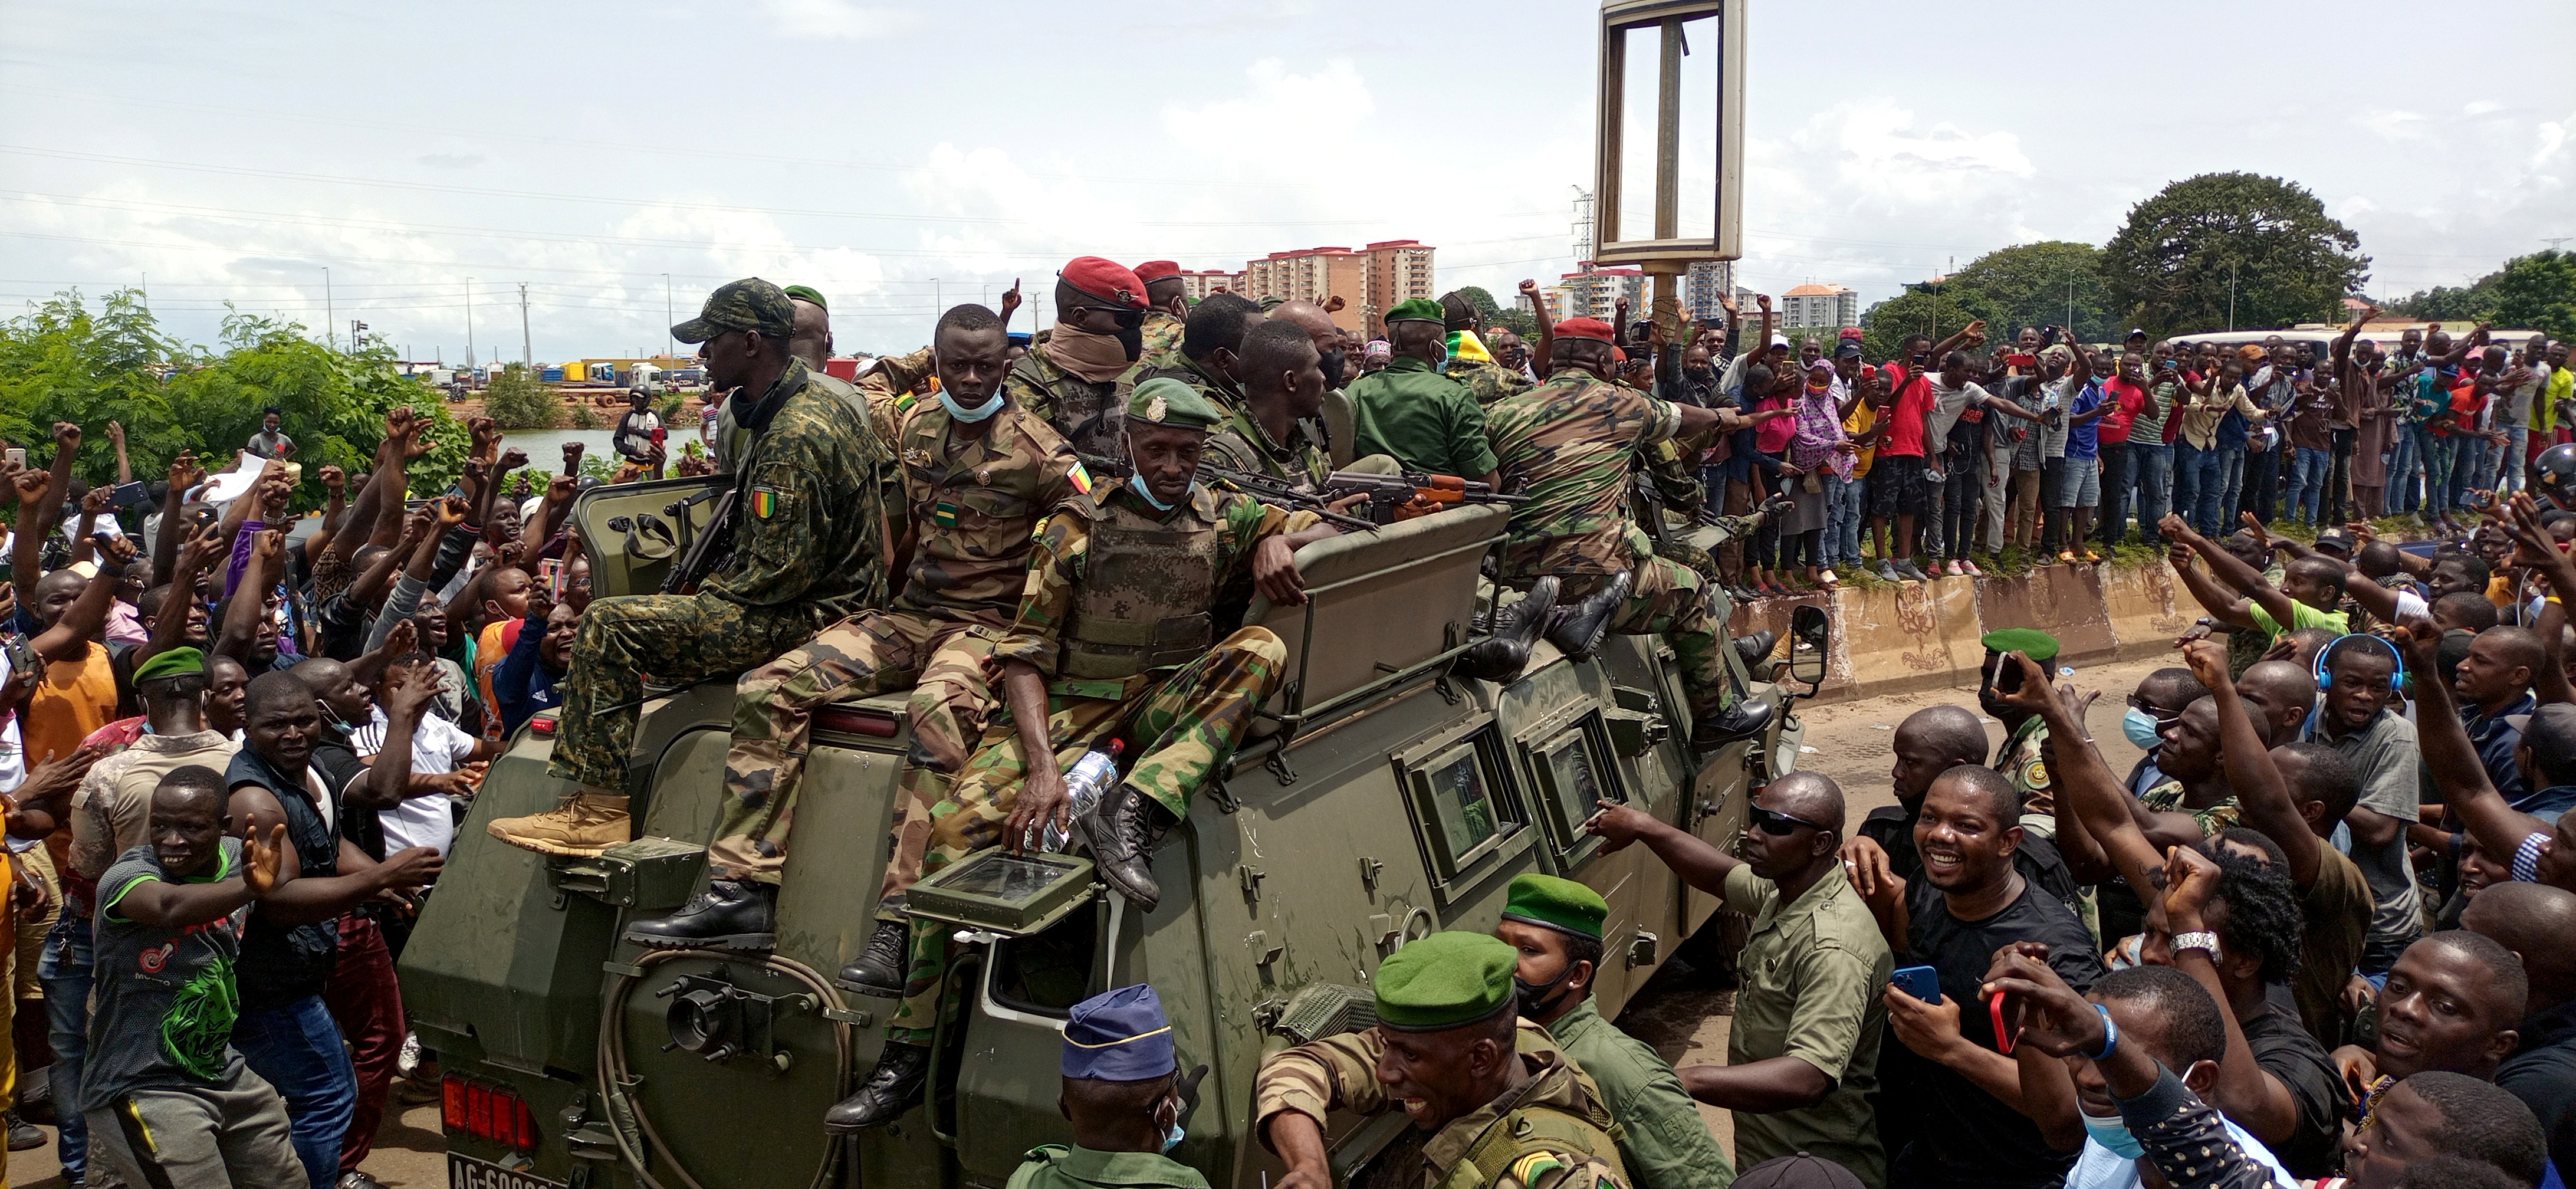 Residents cheer on army soldiers after the uprising that led to the toppling of president Alpha Conde in Kaloum neighbourhood of Conakry, Guinea September 6, 2021 REUTERS/Souleymane Camara